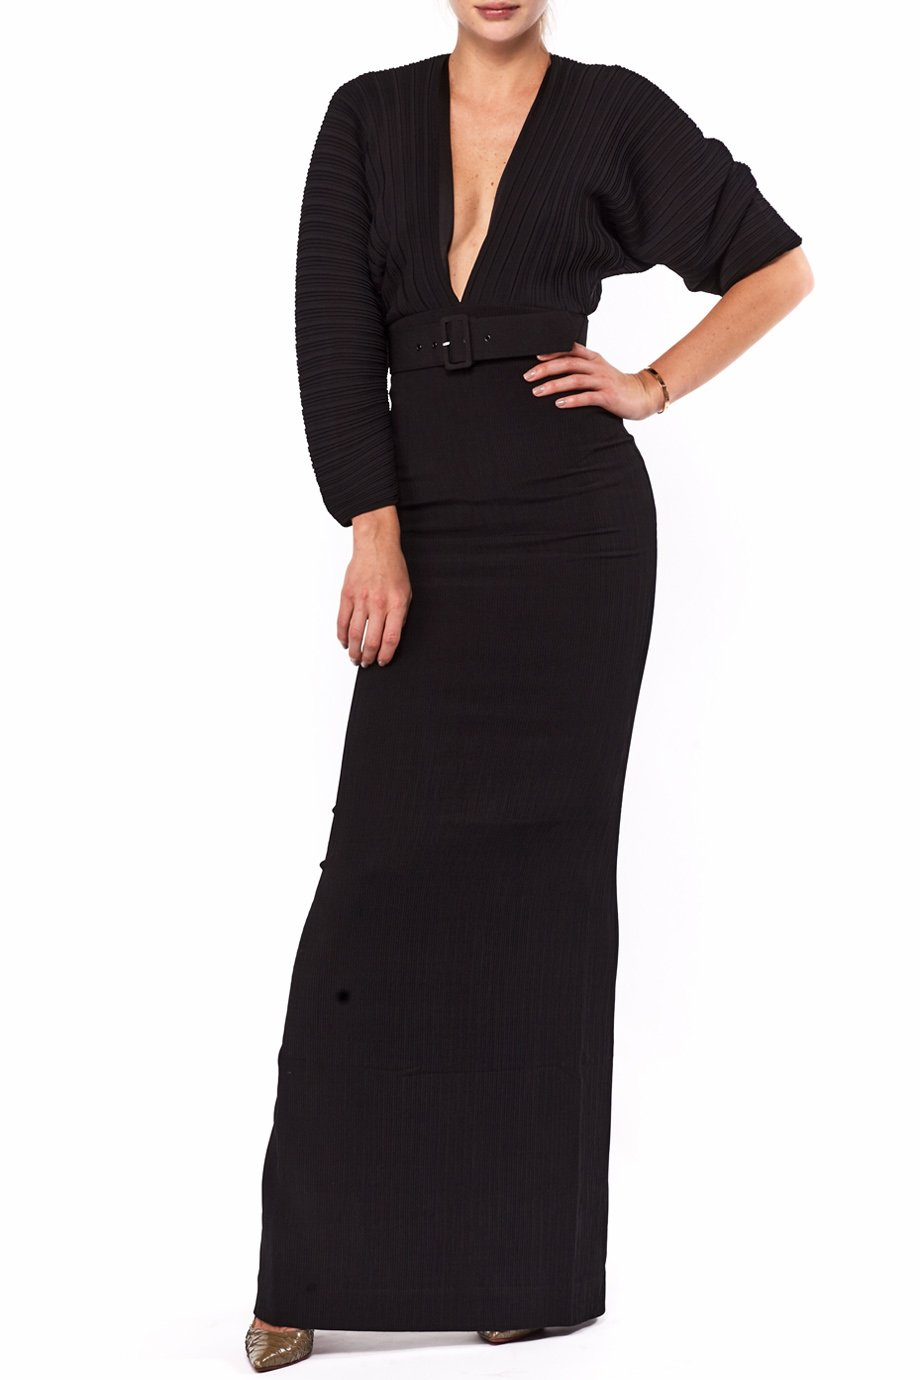 Solace London Black Chiffon Oxana Maxi Dress 715716